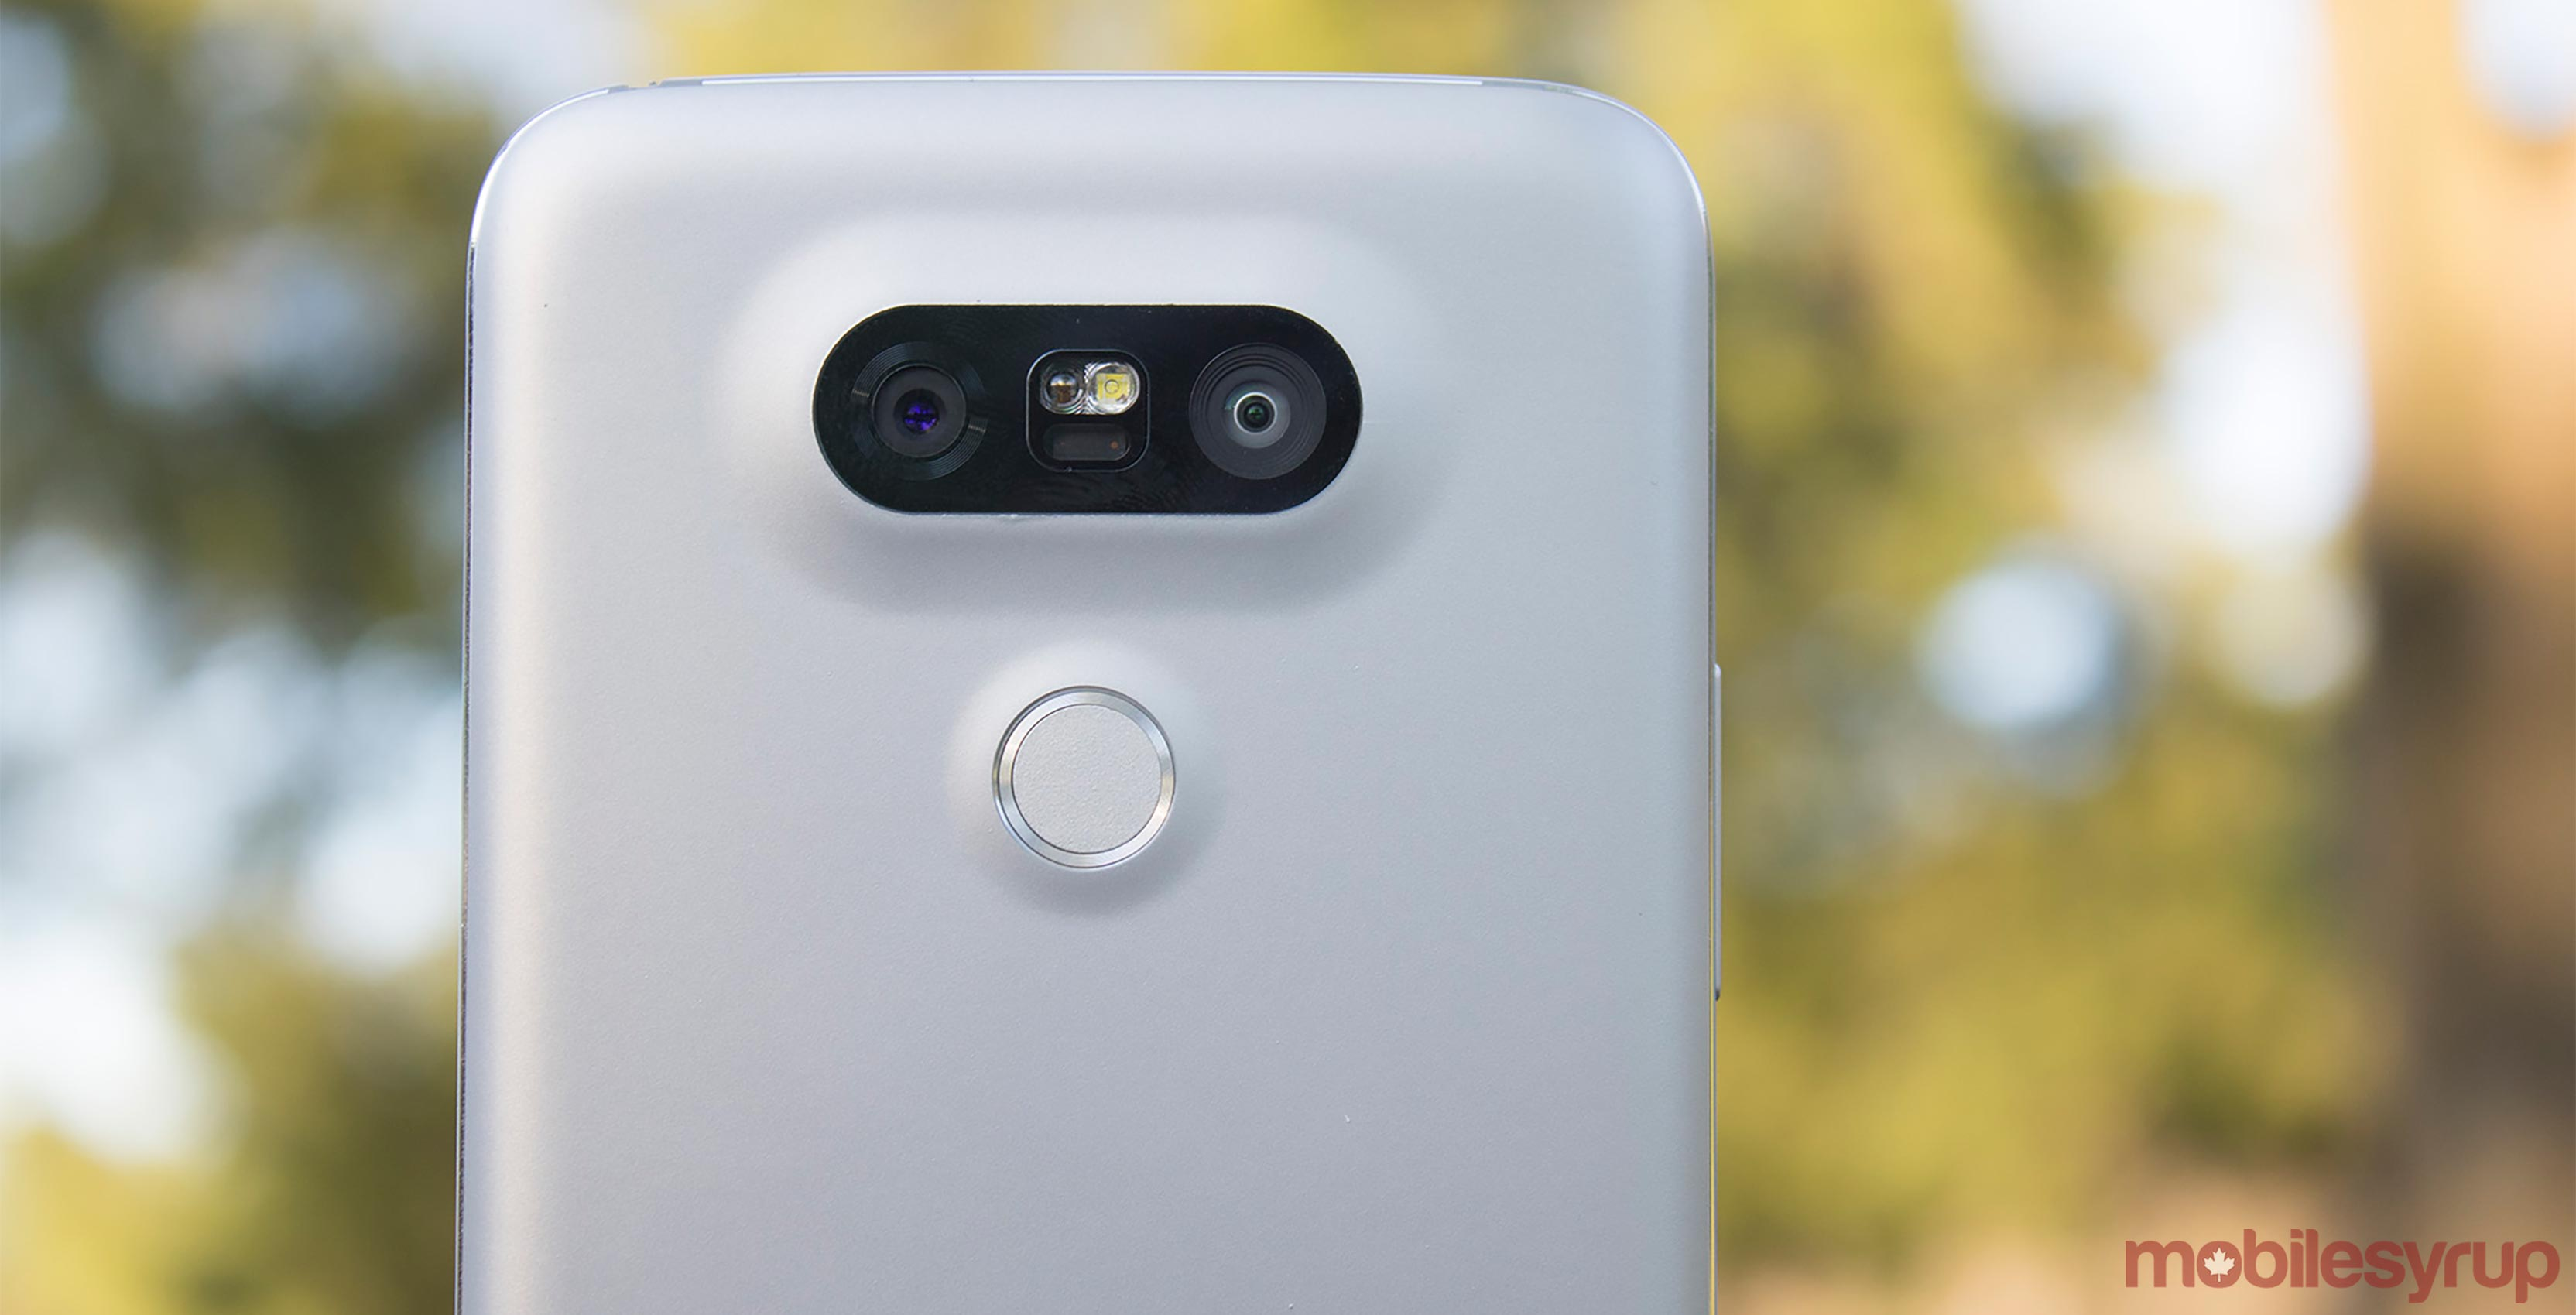 Photo of the LG G5